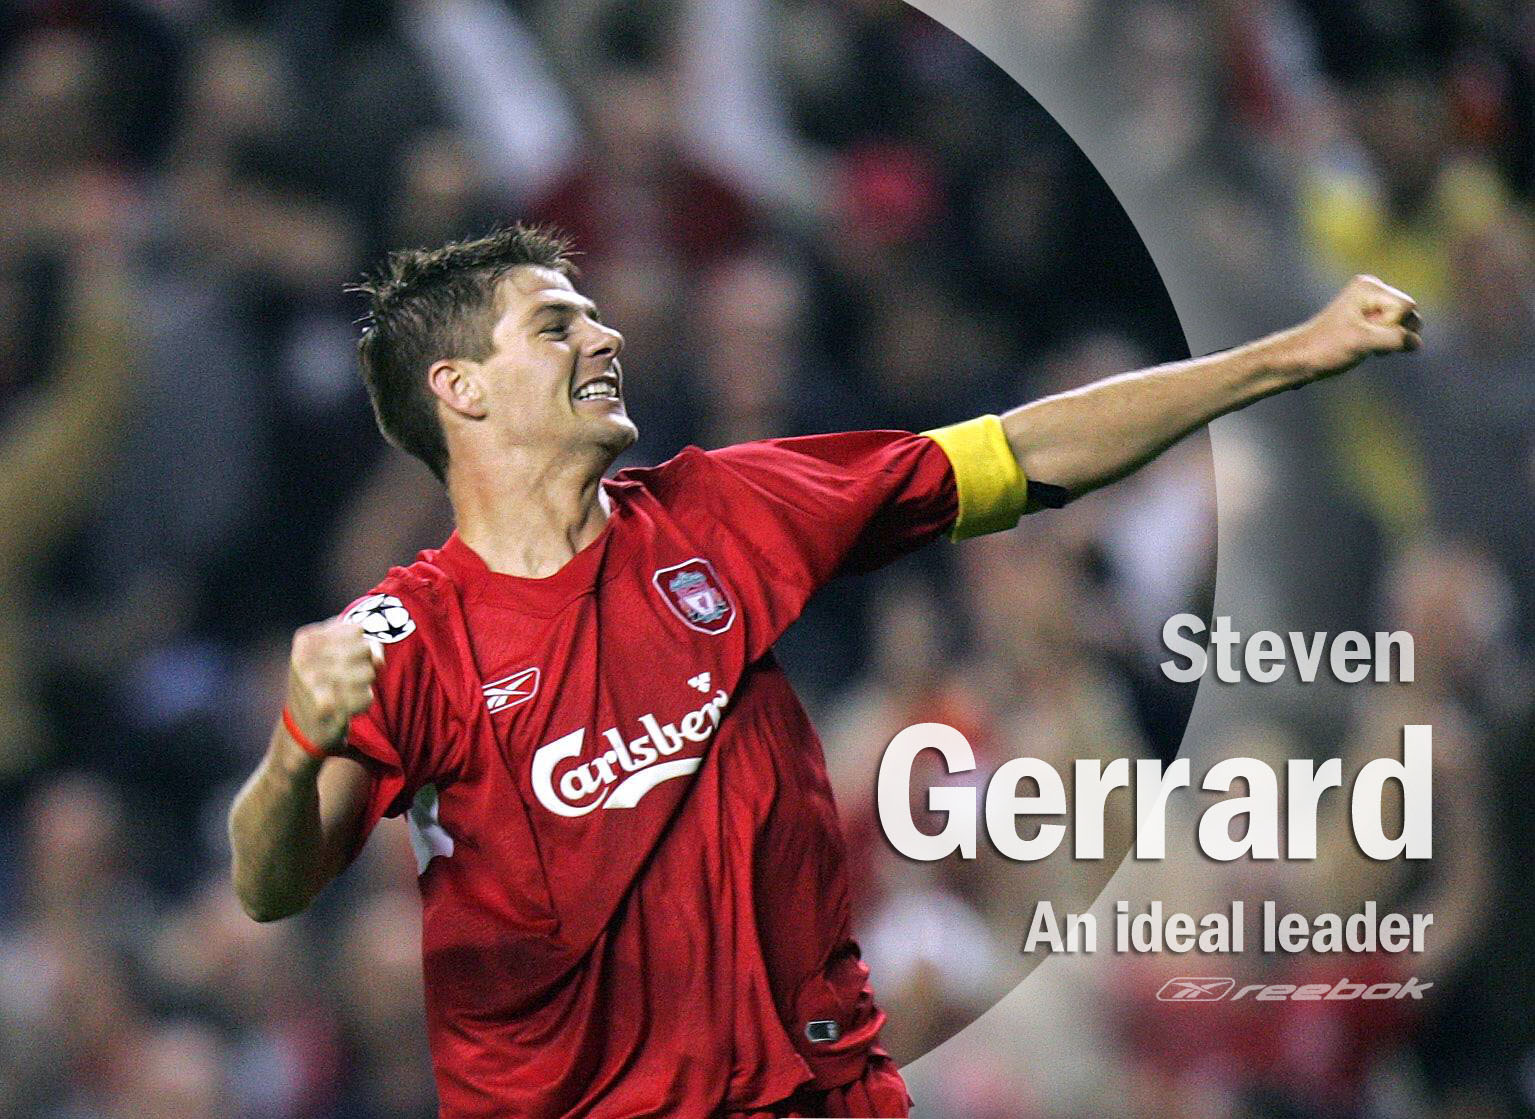 http://www.efastclick.com/images/wallpapers/steven-gerrard-wallpapers-Liverpool-4.jpg